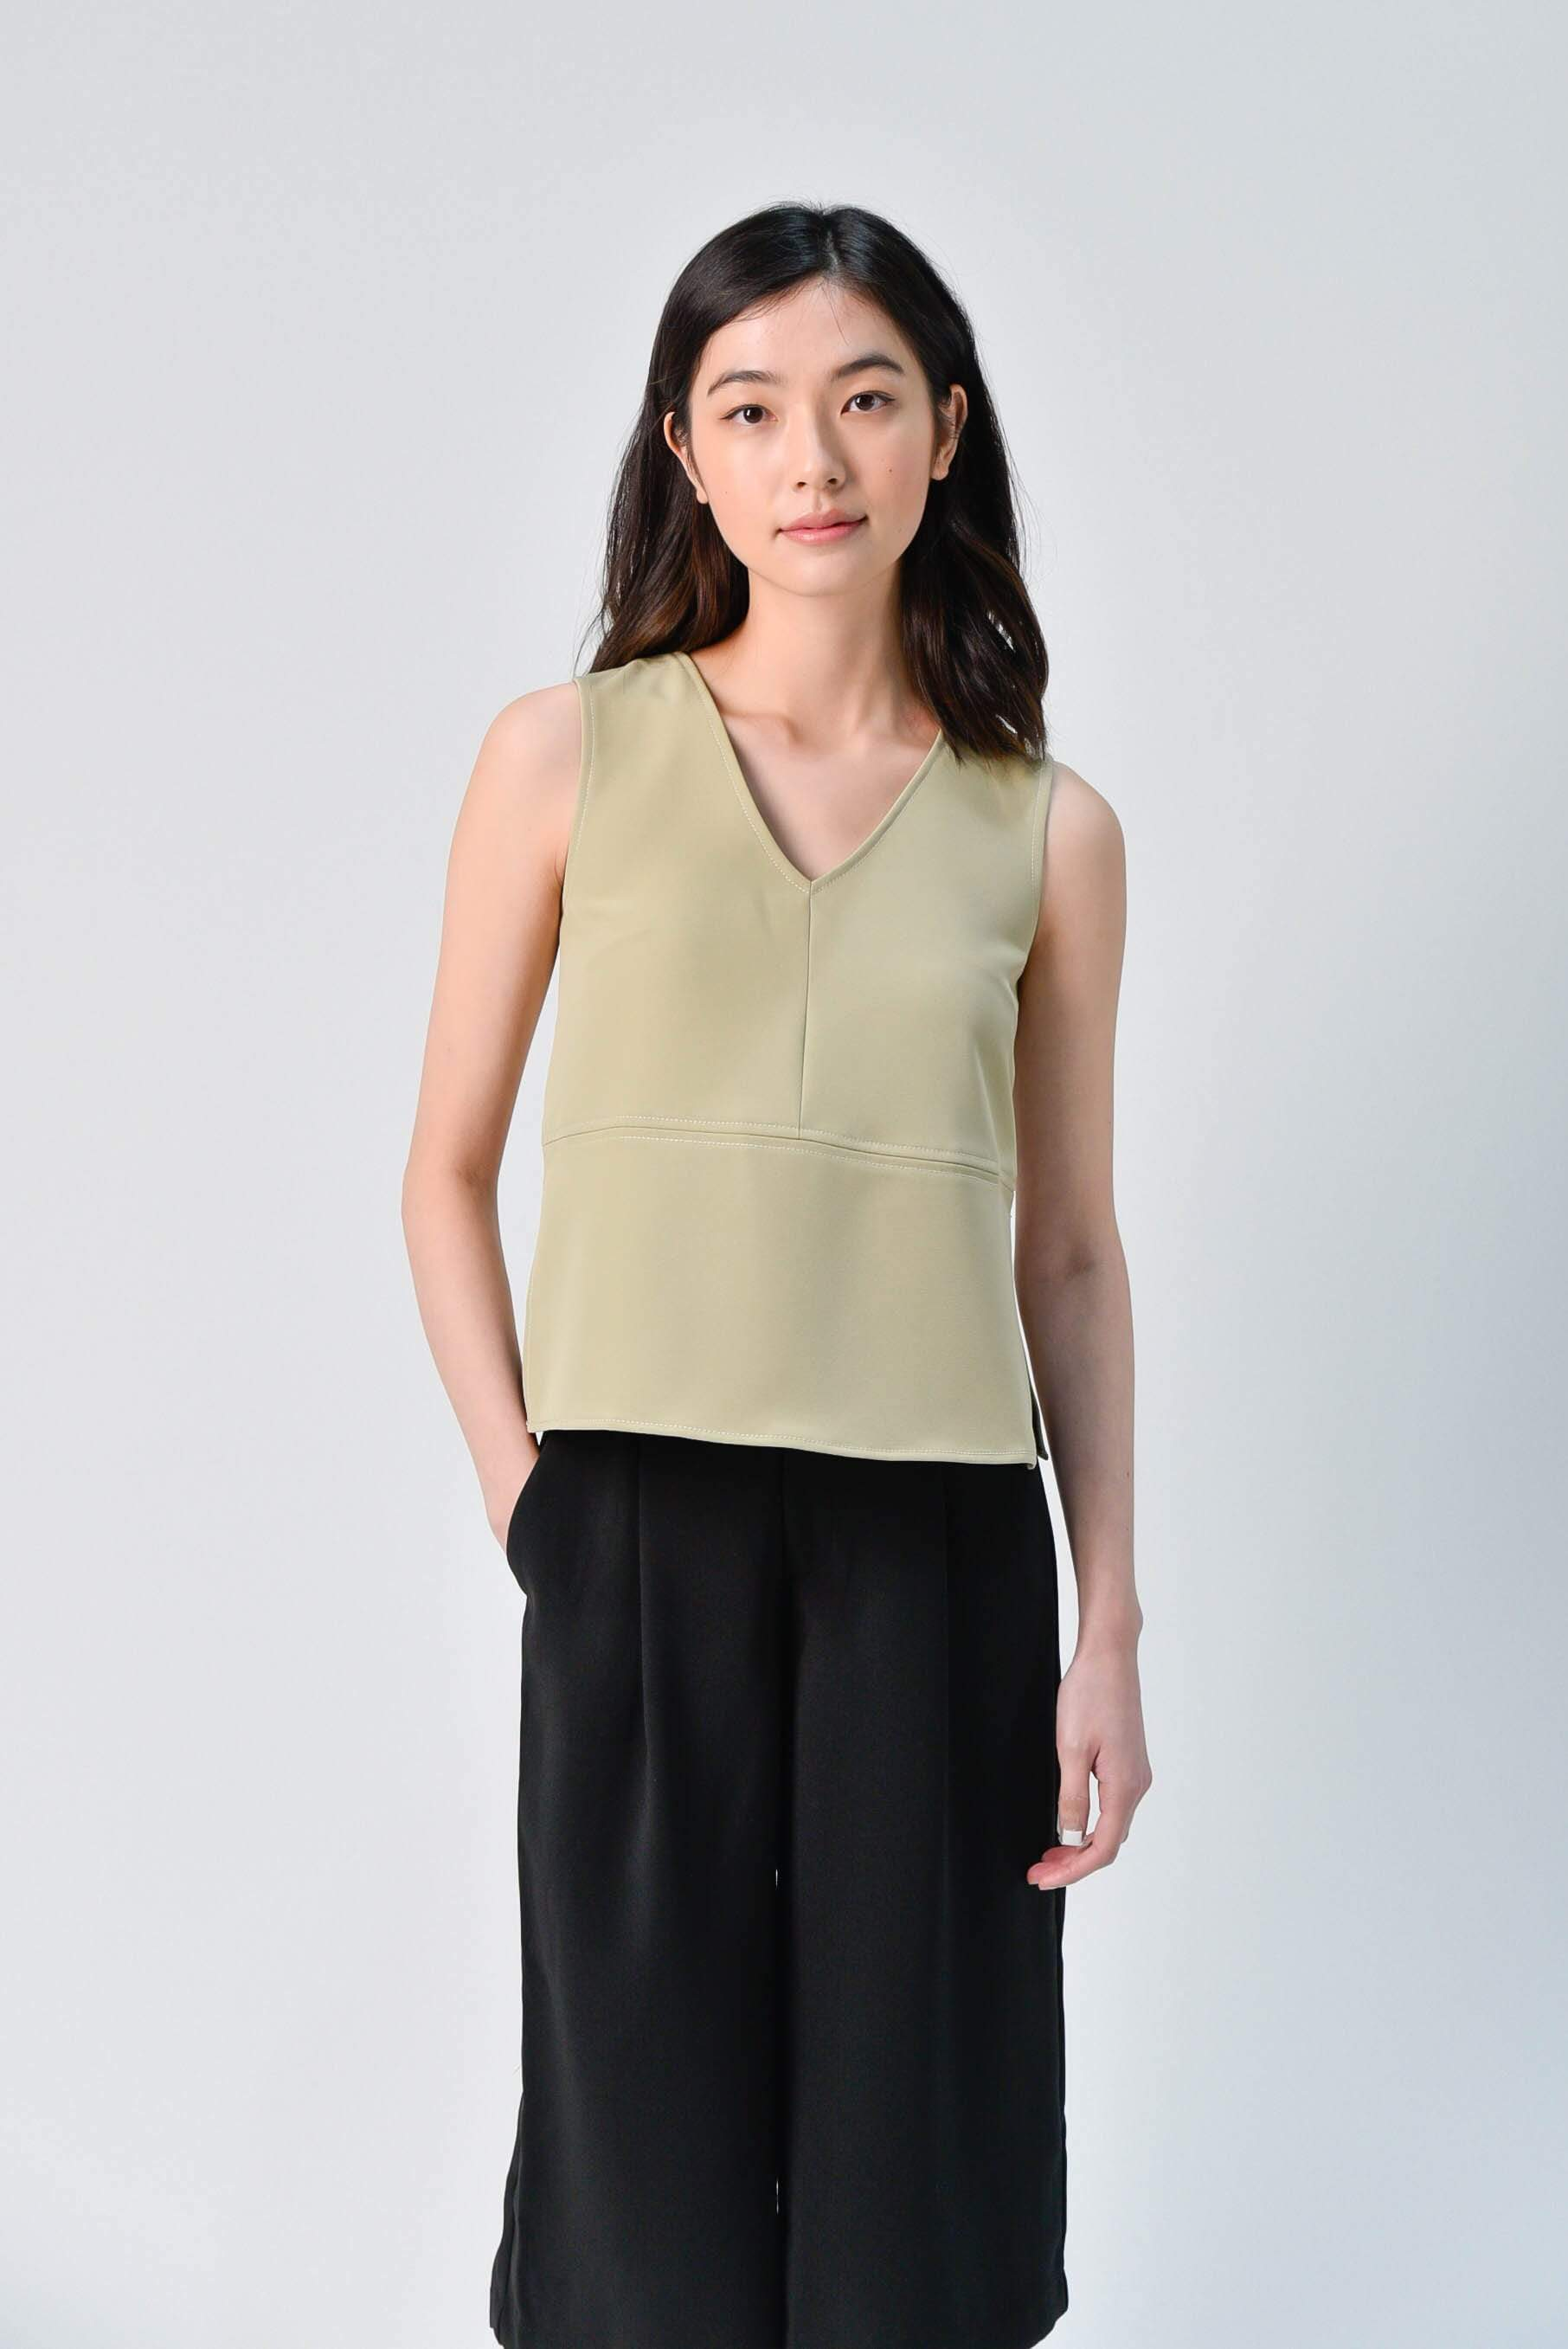 STITCHED SIDE-SLIT TOP IN LIGHT OLIVE